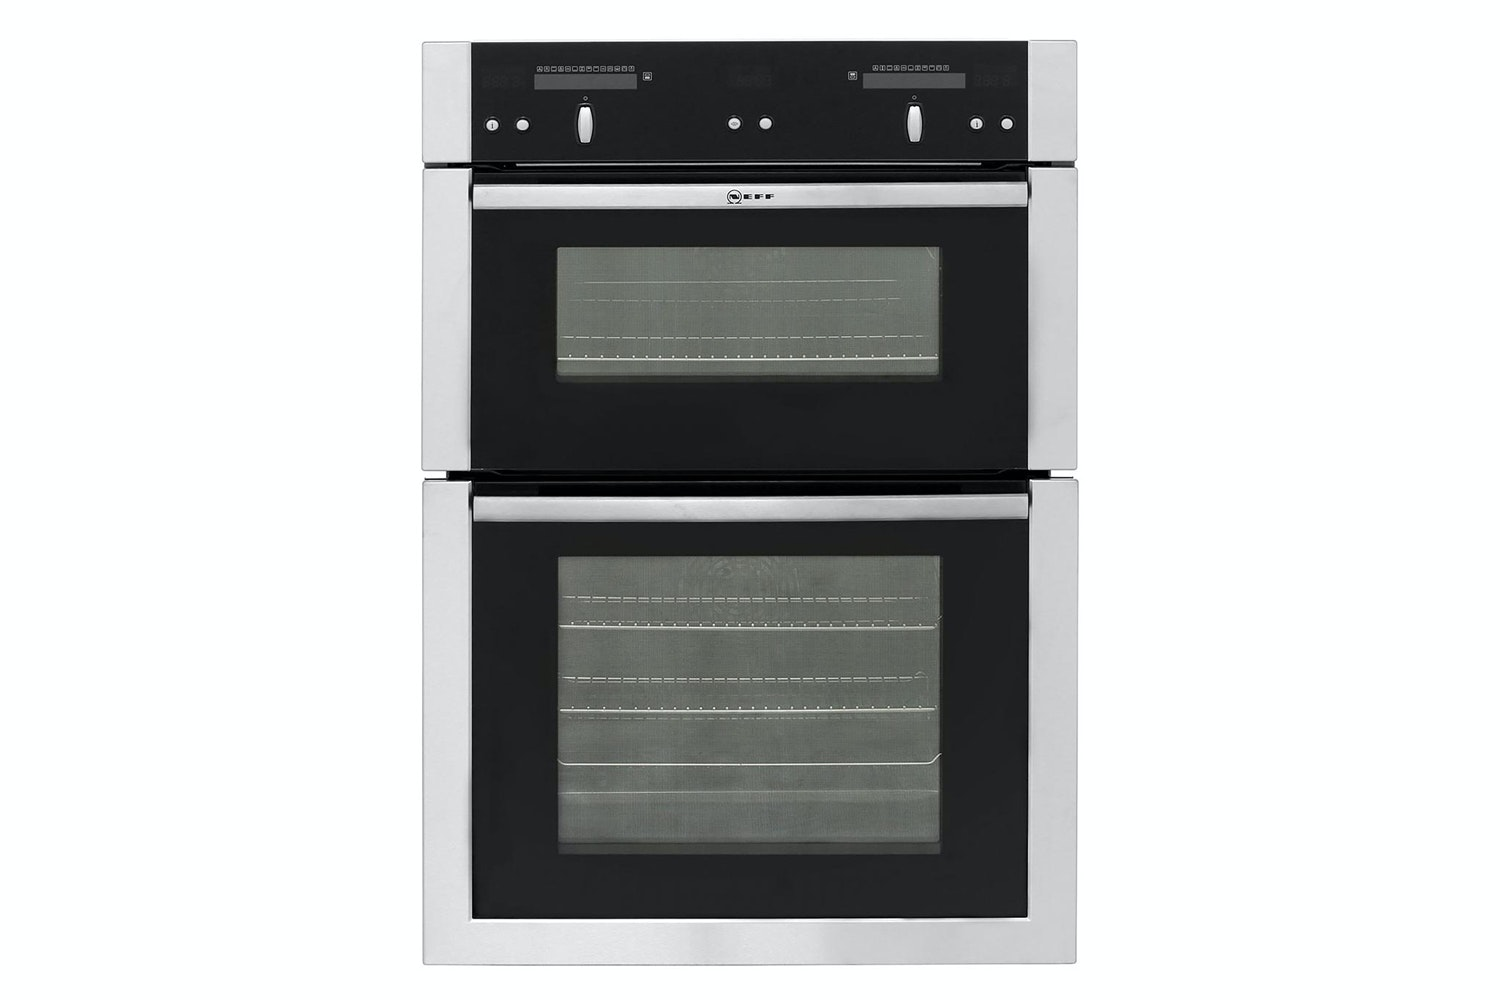 Neff Built-In Double Oven | U16E74N5GB